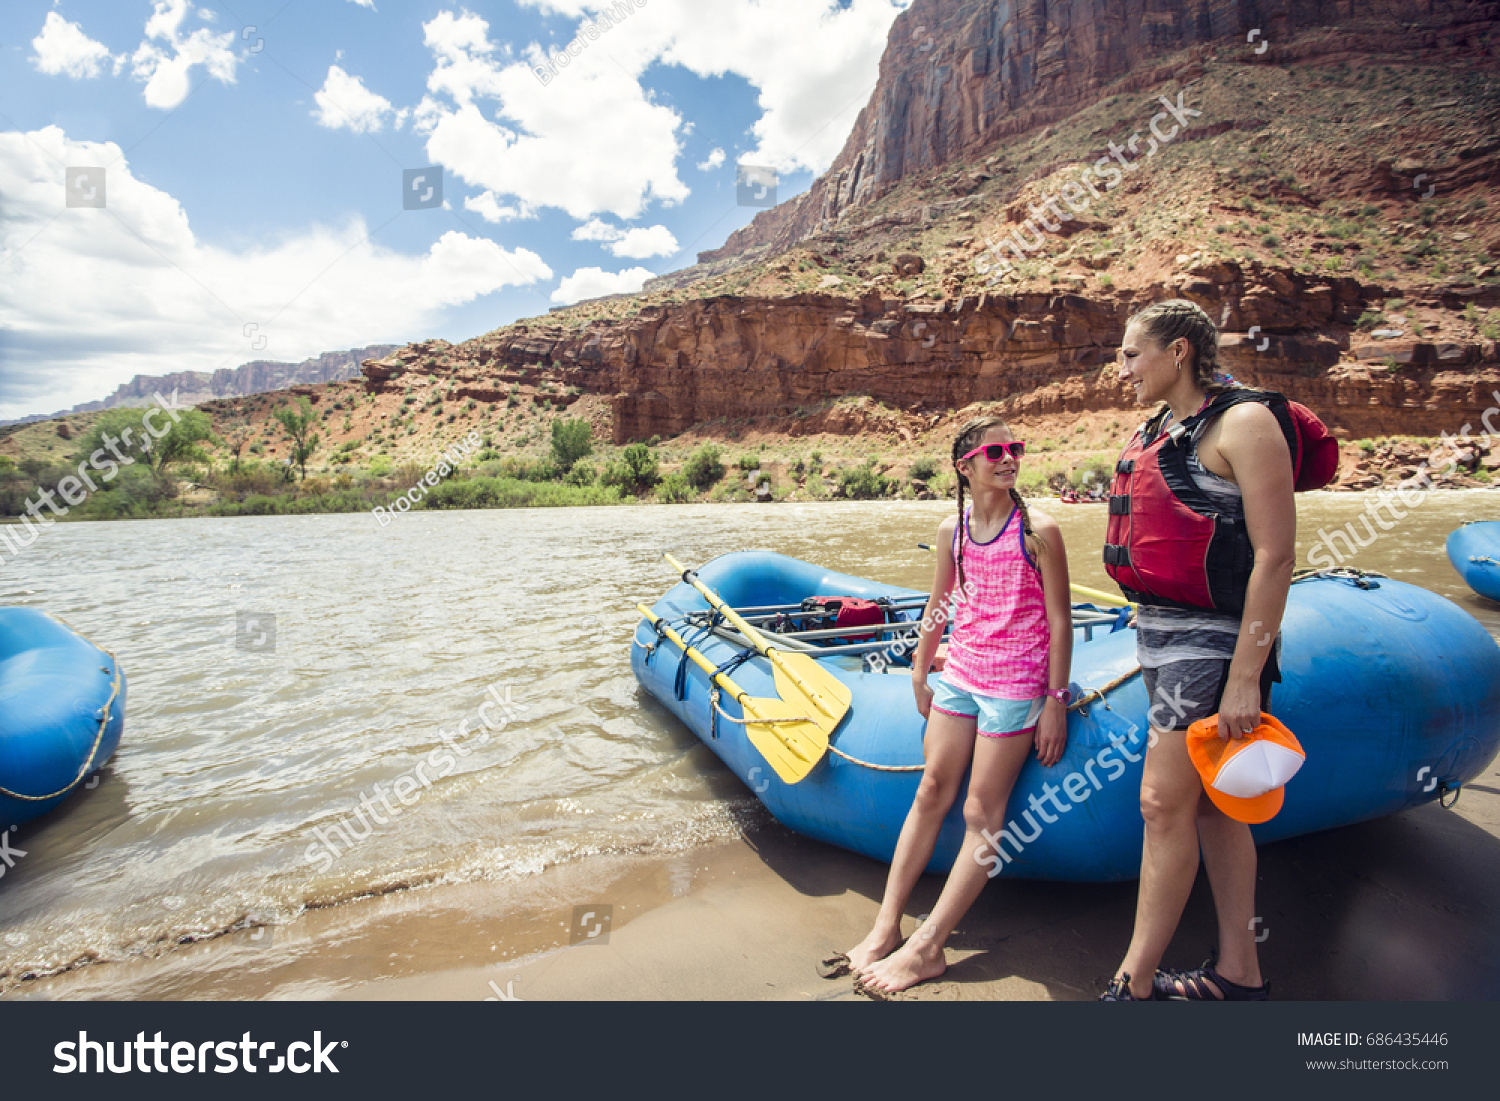 Smiling Child And Adult Women Ready To Board A Large Inflatable Raft As  They Travel Down